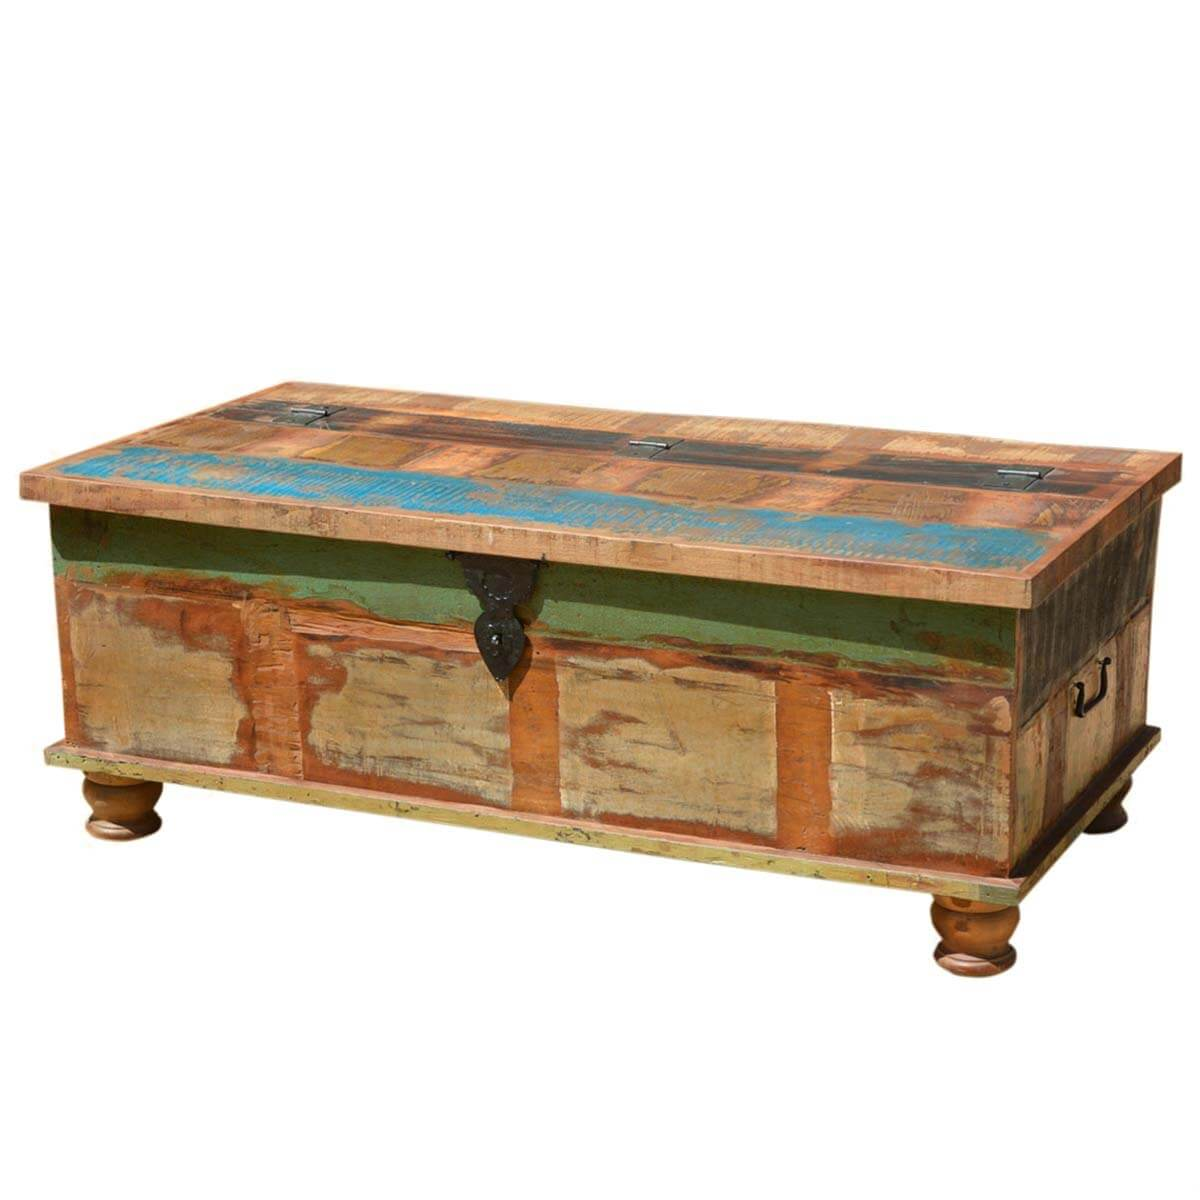 Grinnell rustic reclaimed wood coffee table storage trunk Rustic wooden coffee tables